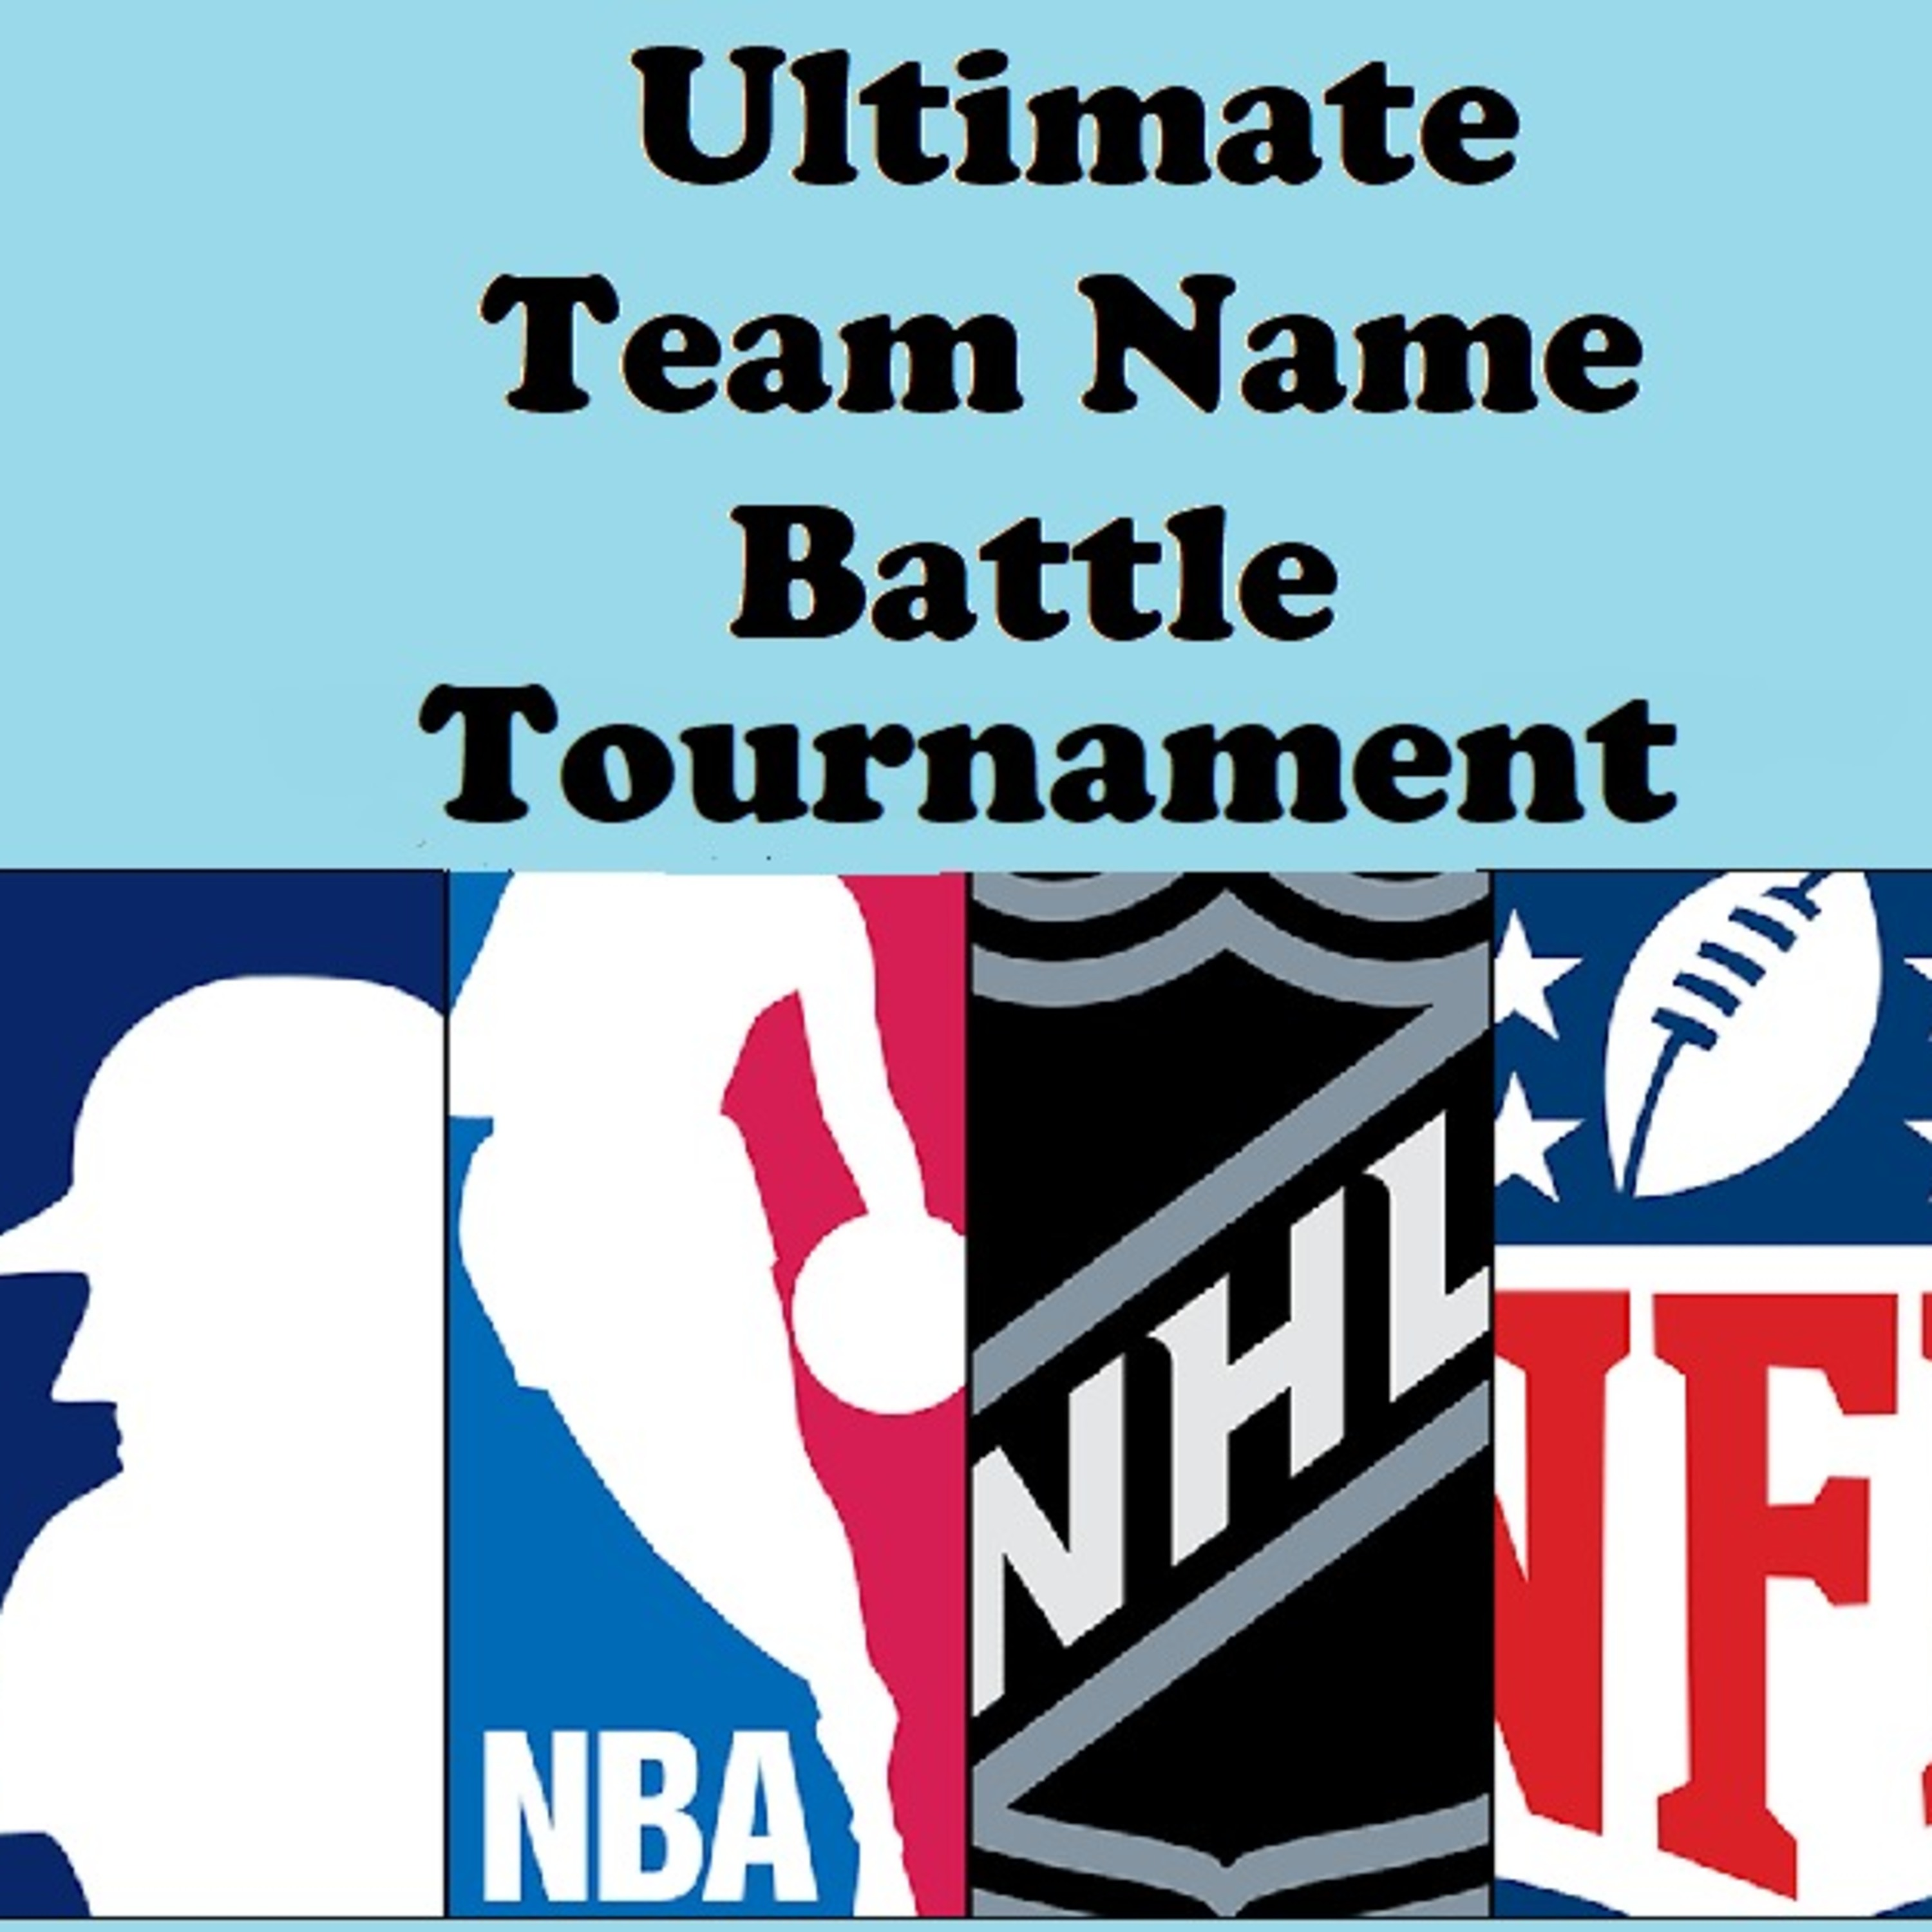 Episode 28 - Ending of the Ultimate Team Name Battle Tournament